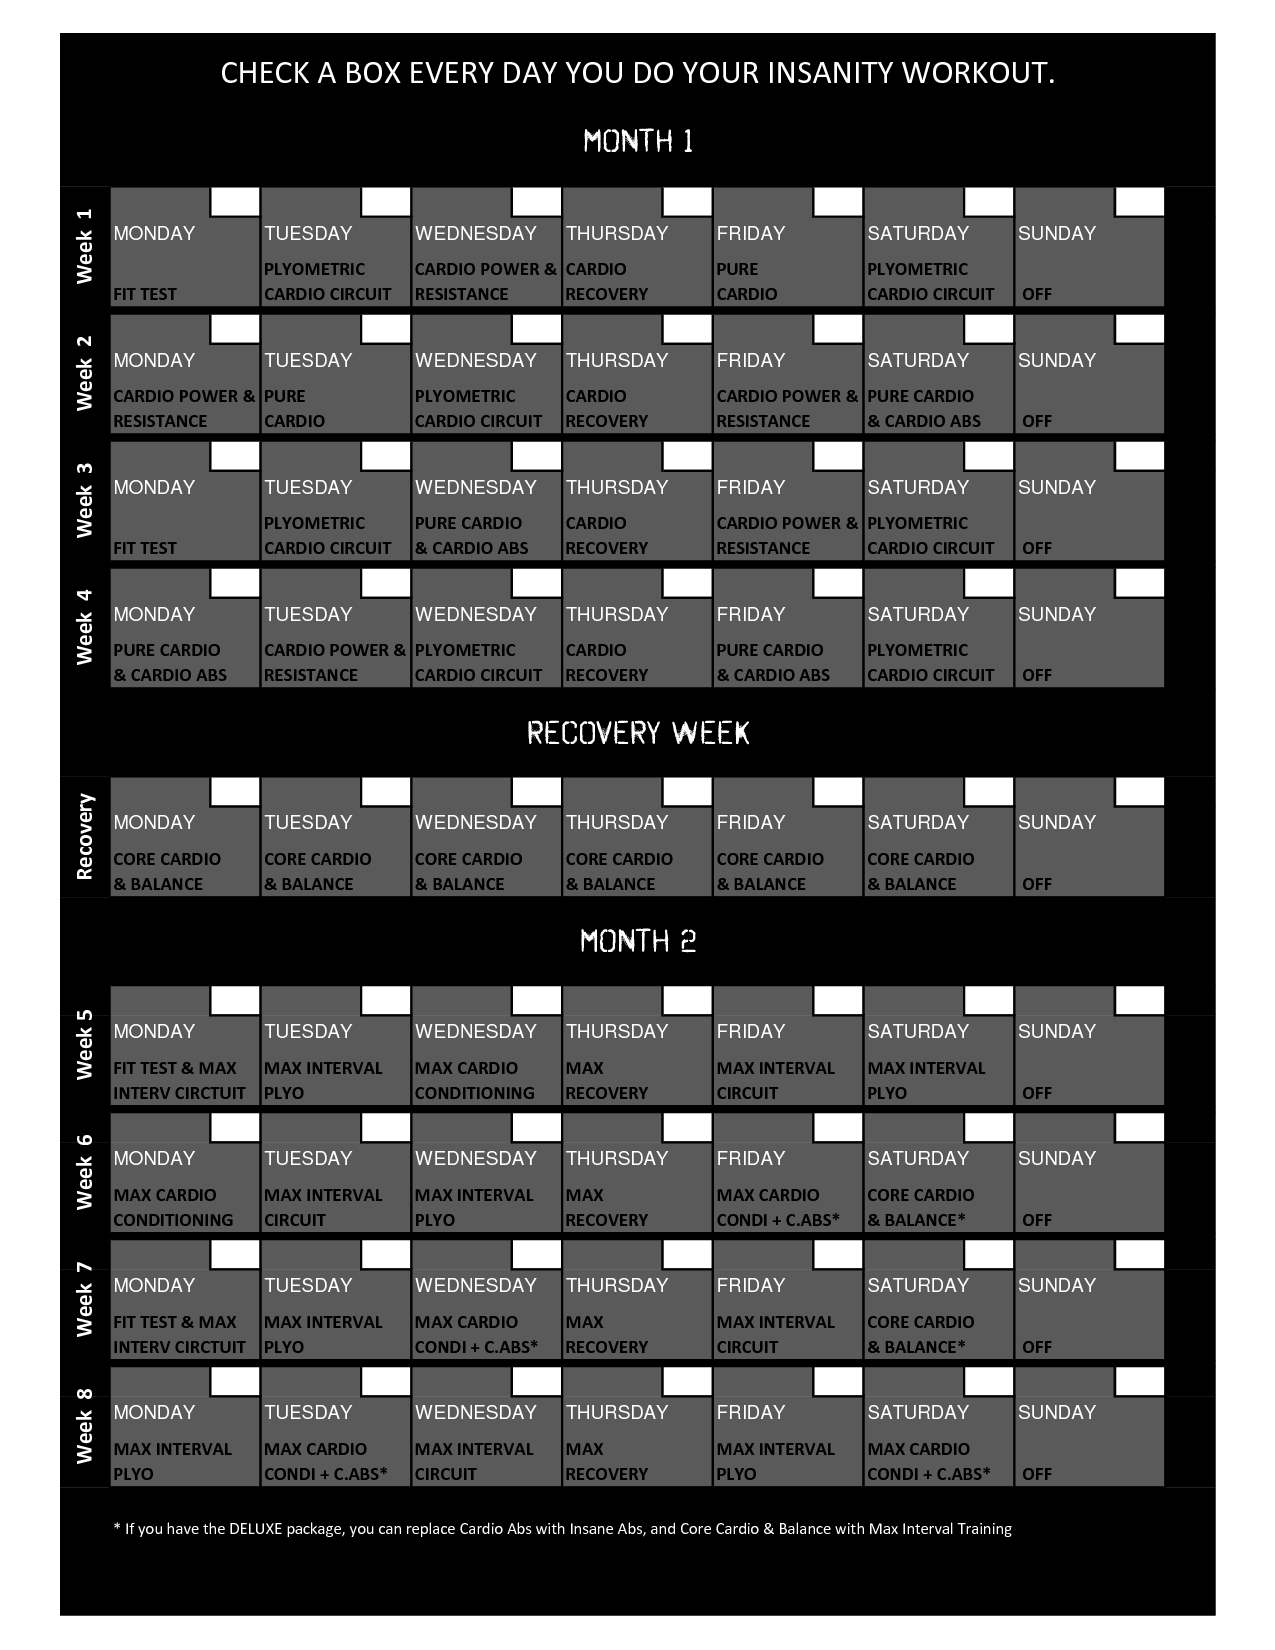 Insanity Printable Fit Test Printable insanity workout